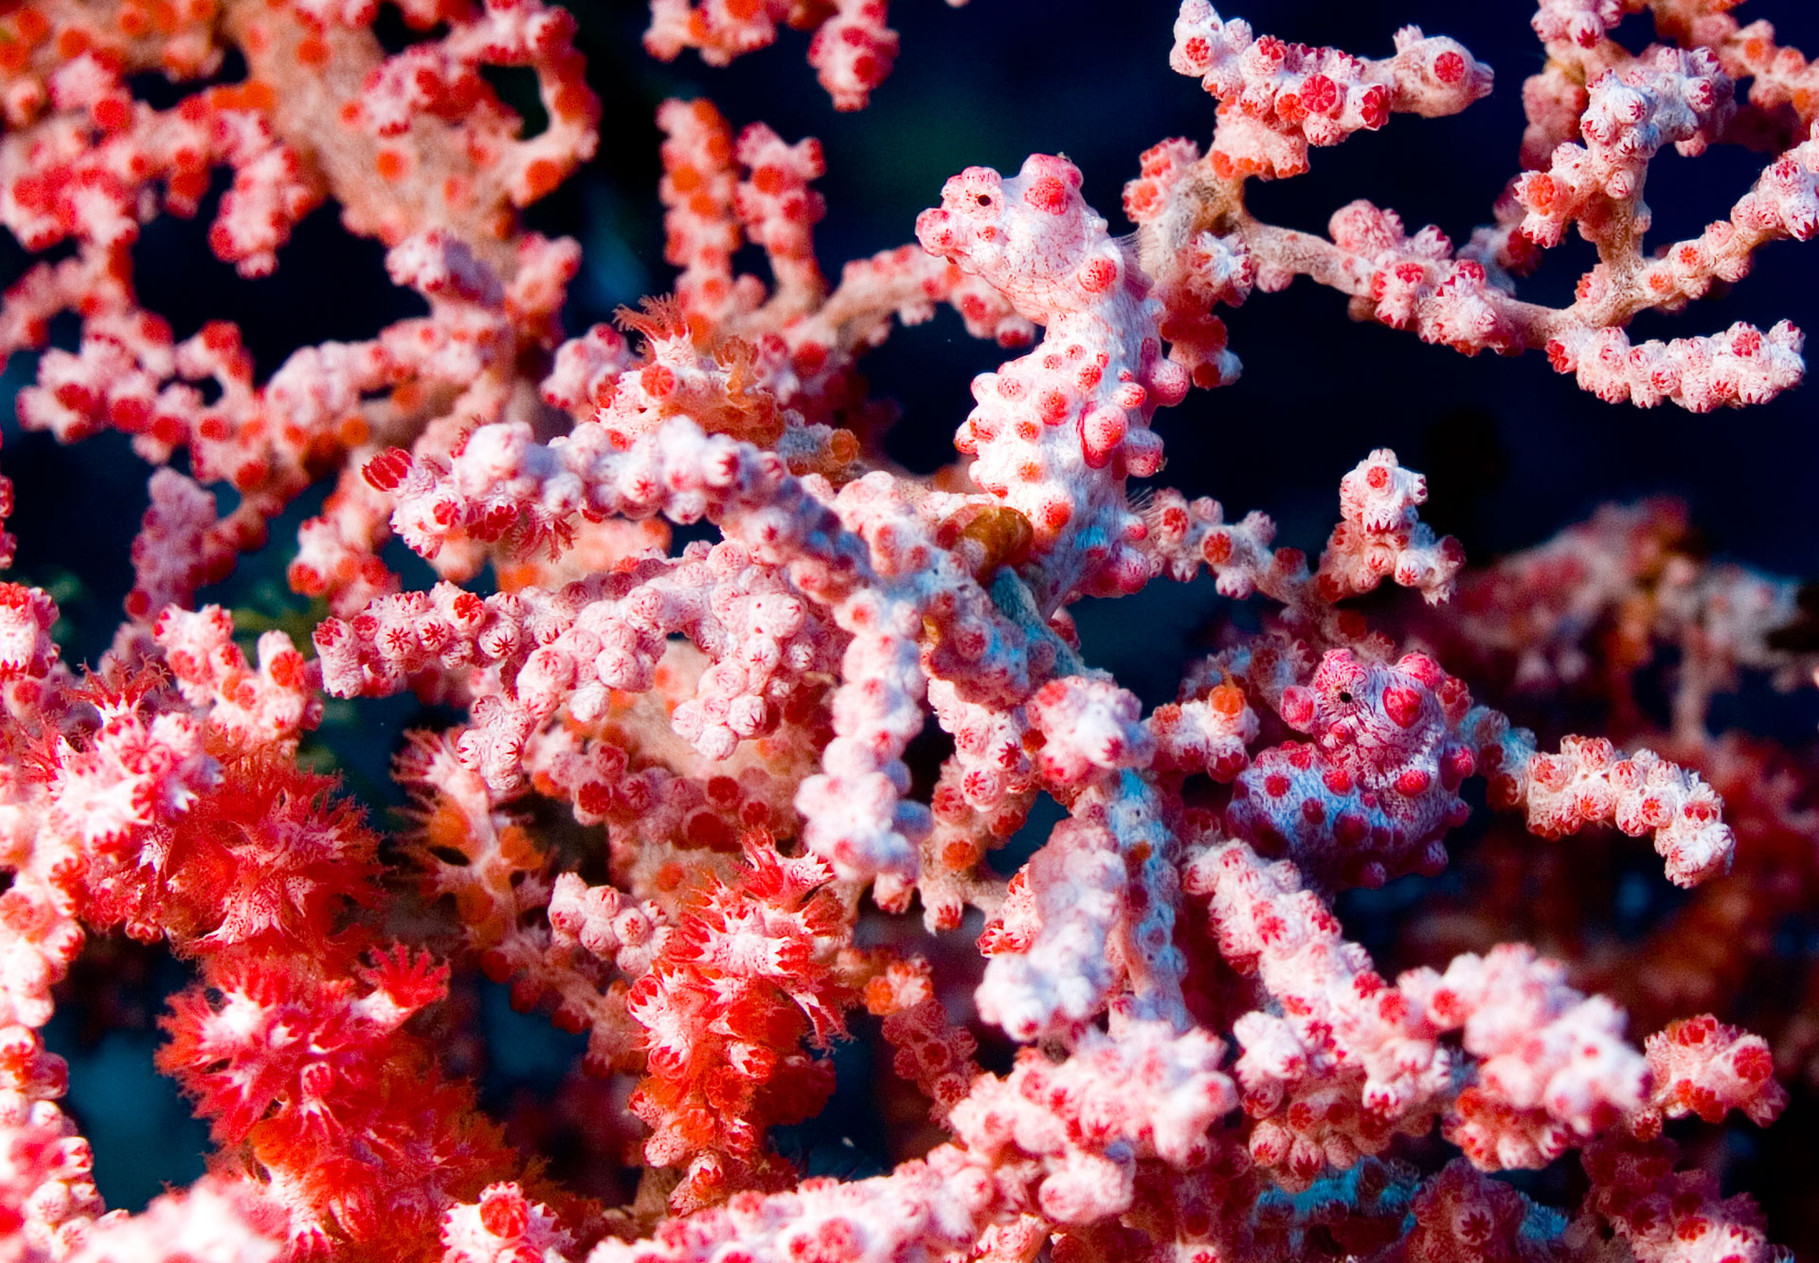 Two pygmy seahorses (not bigger than 1.5 cm)Pygmy